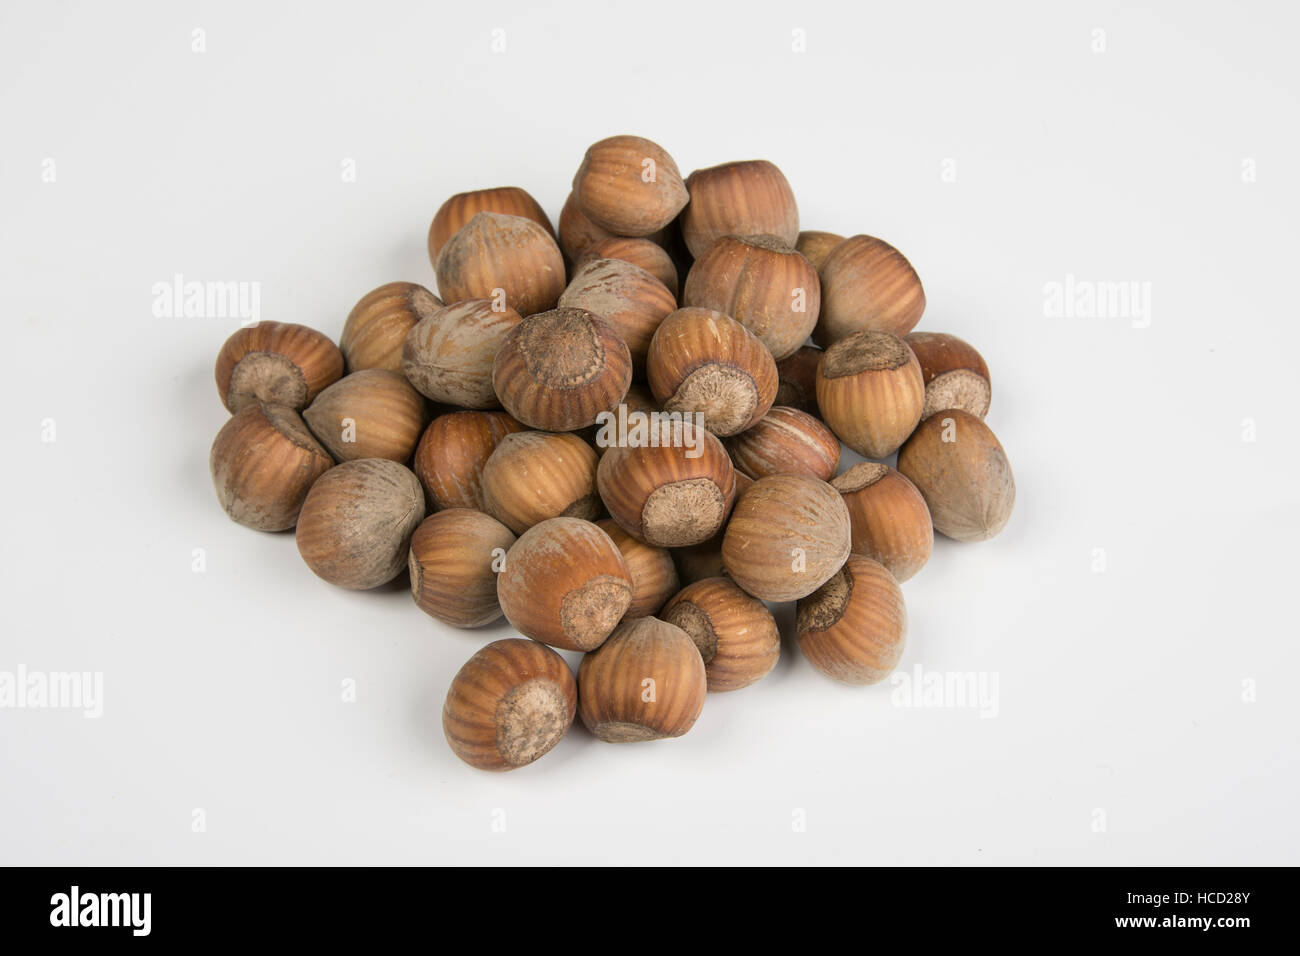 Nuts - Stock Image